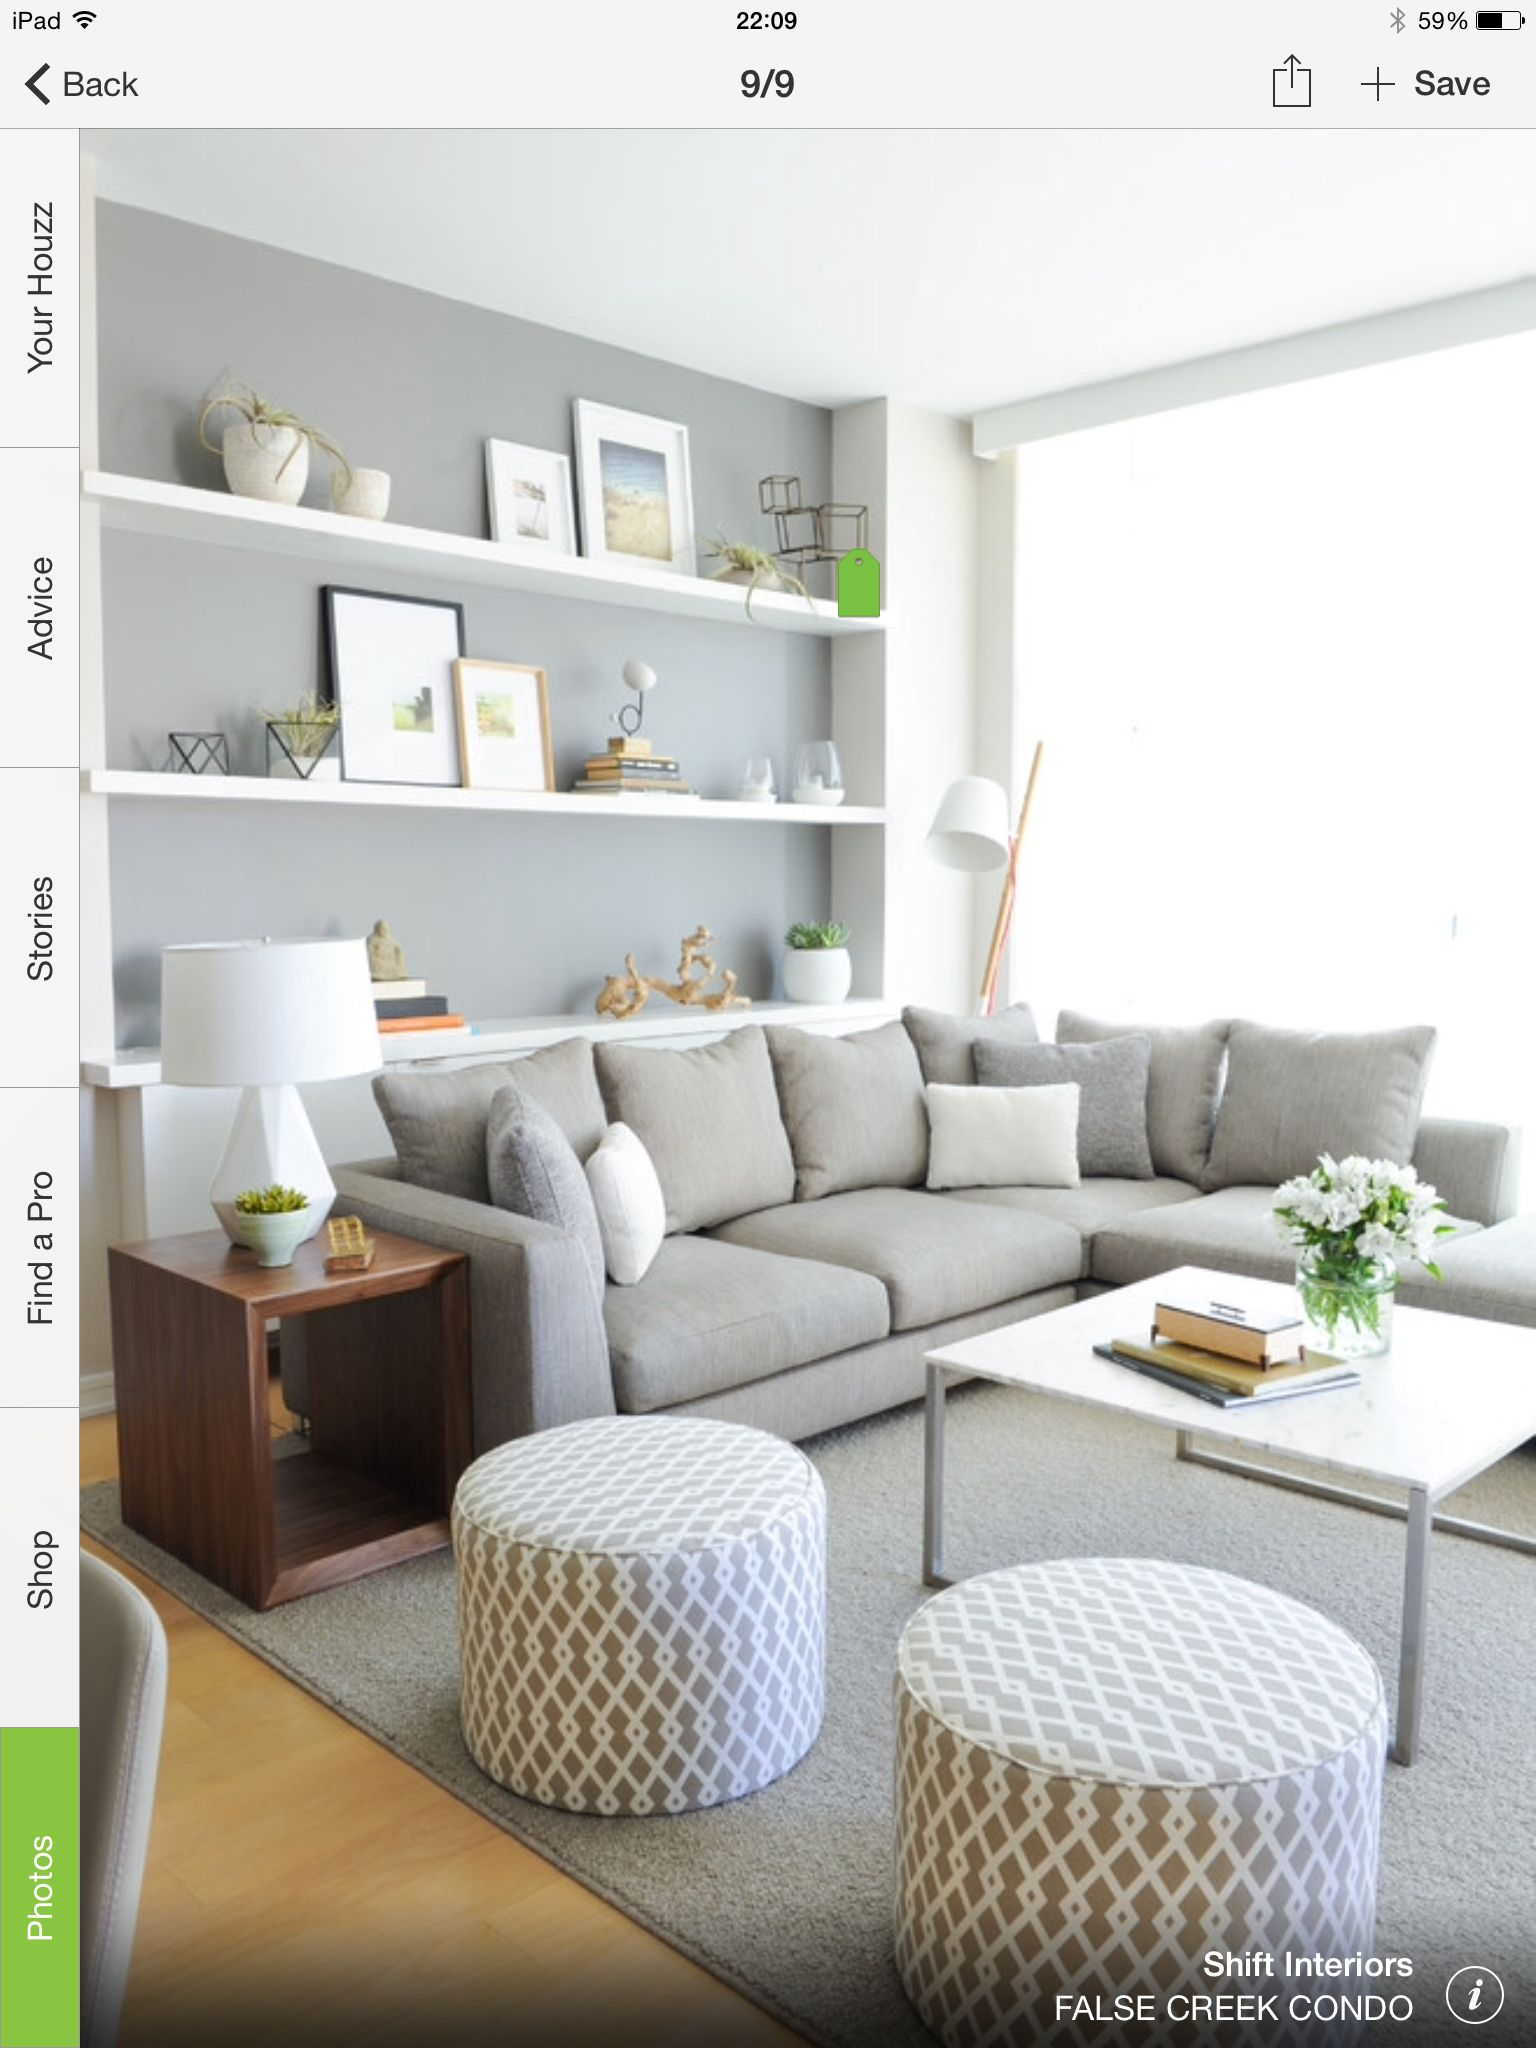 Houzz. Greys | afrikaofficial | Pinterest | Houzz, Living rooms and Room